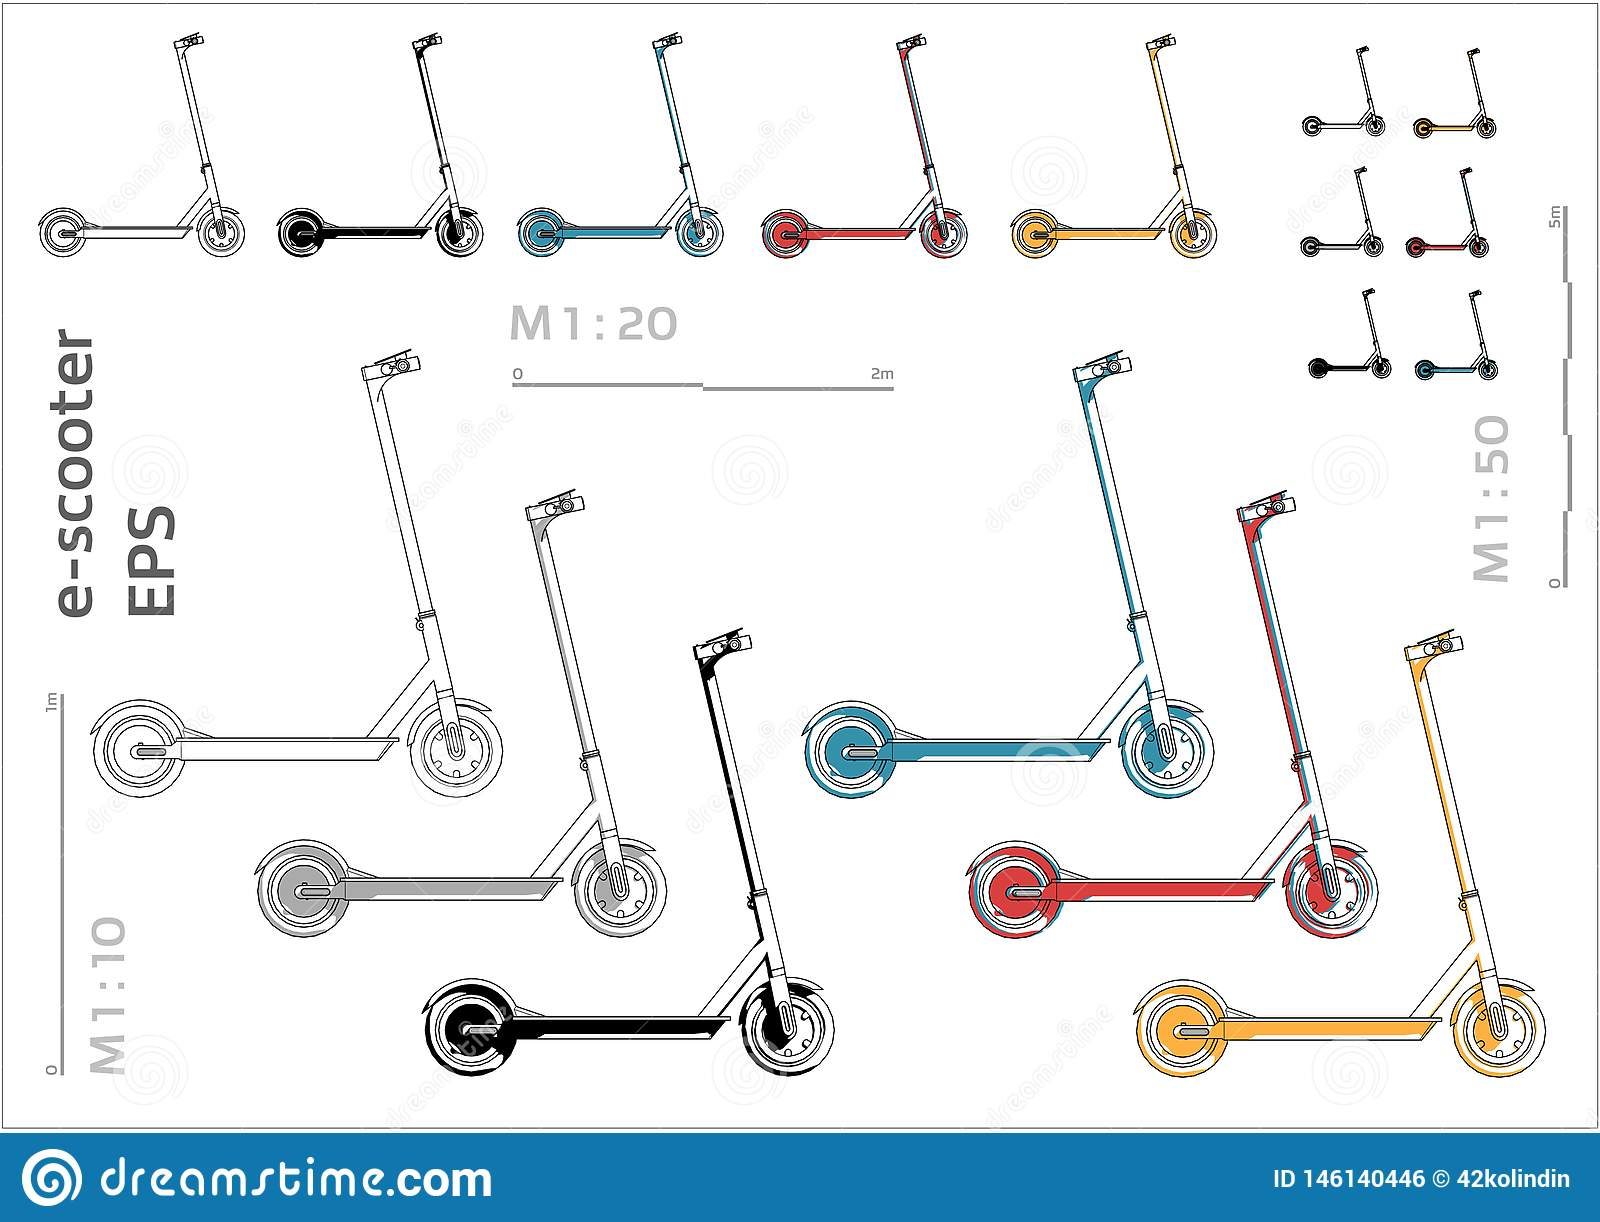 Street motorized electric kick e-sooter vector icons set for architectural drawing and illustration